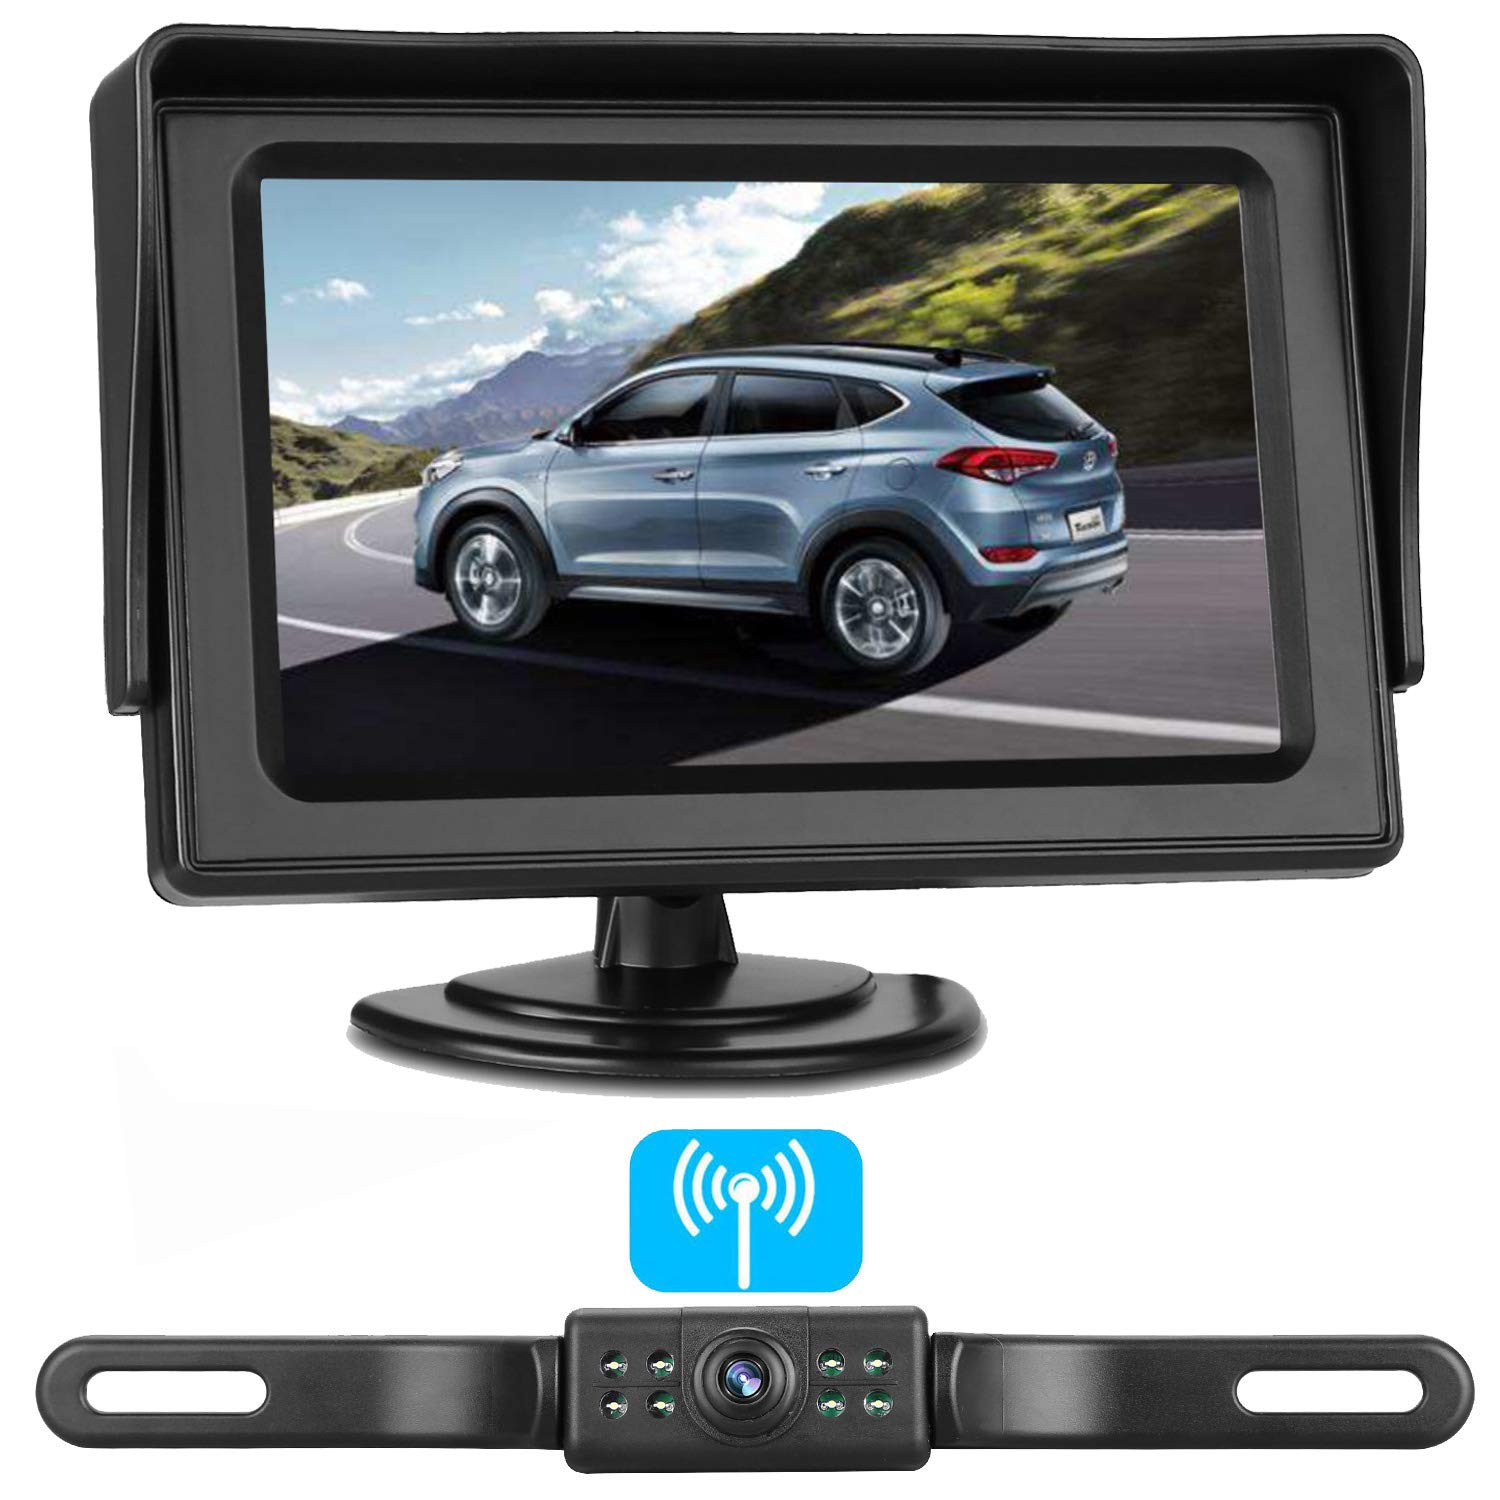 mirror with backup camera further buick rendezvous fuse box diagramamazon com zsmj wireless backup camera and monitor kit 9v 24v rearamazon com zsmj wireless backup